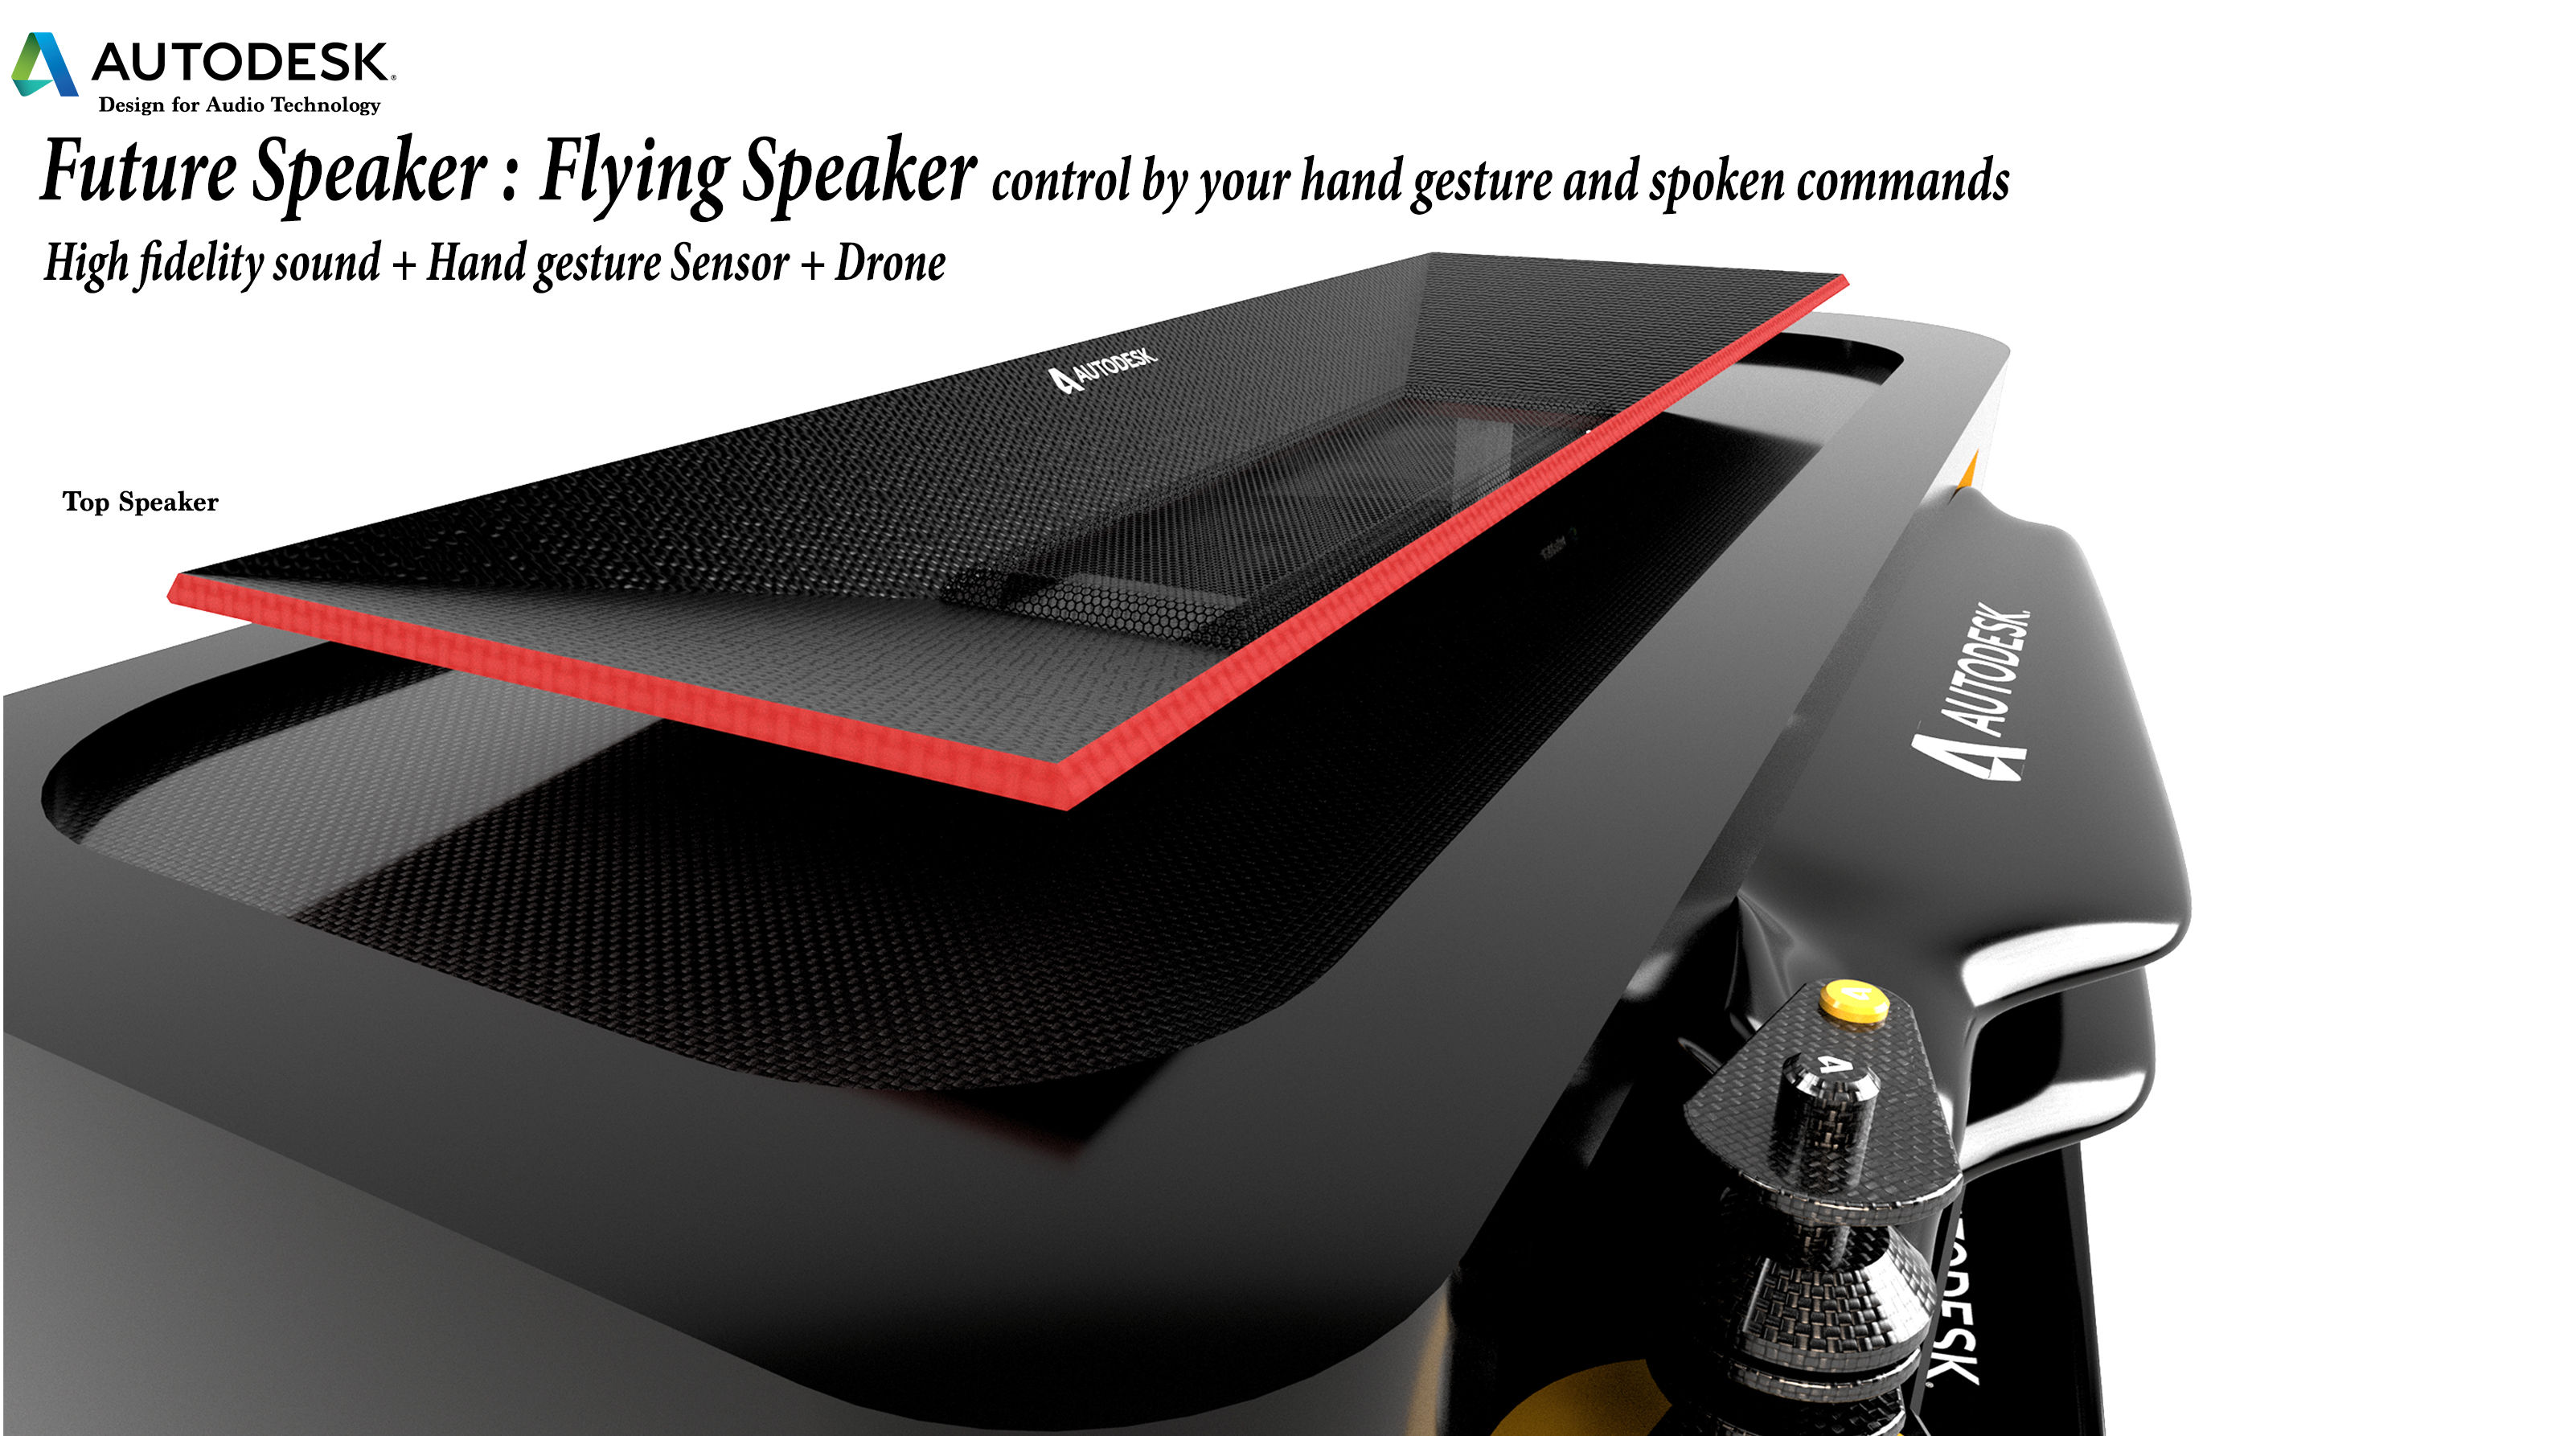 Speakers-photoshop3-1-3500-3500